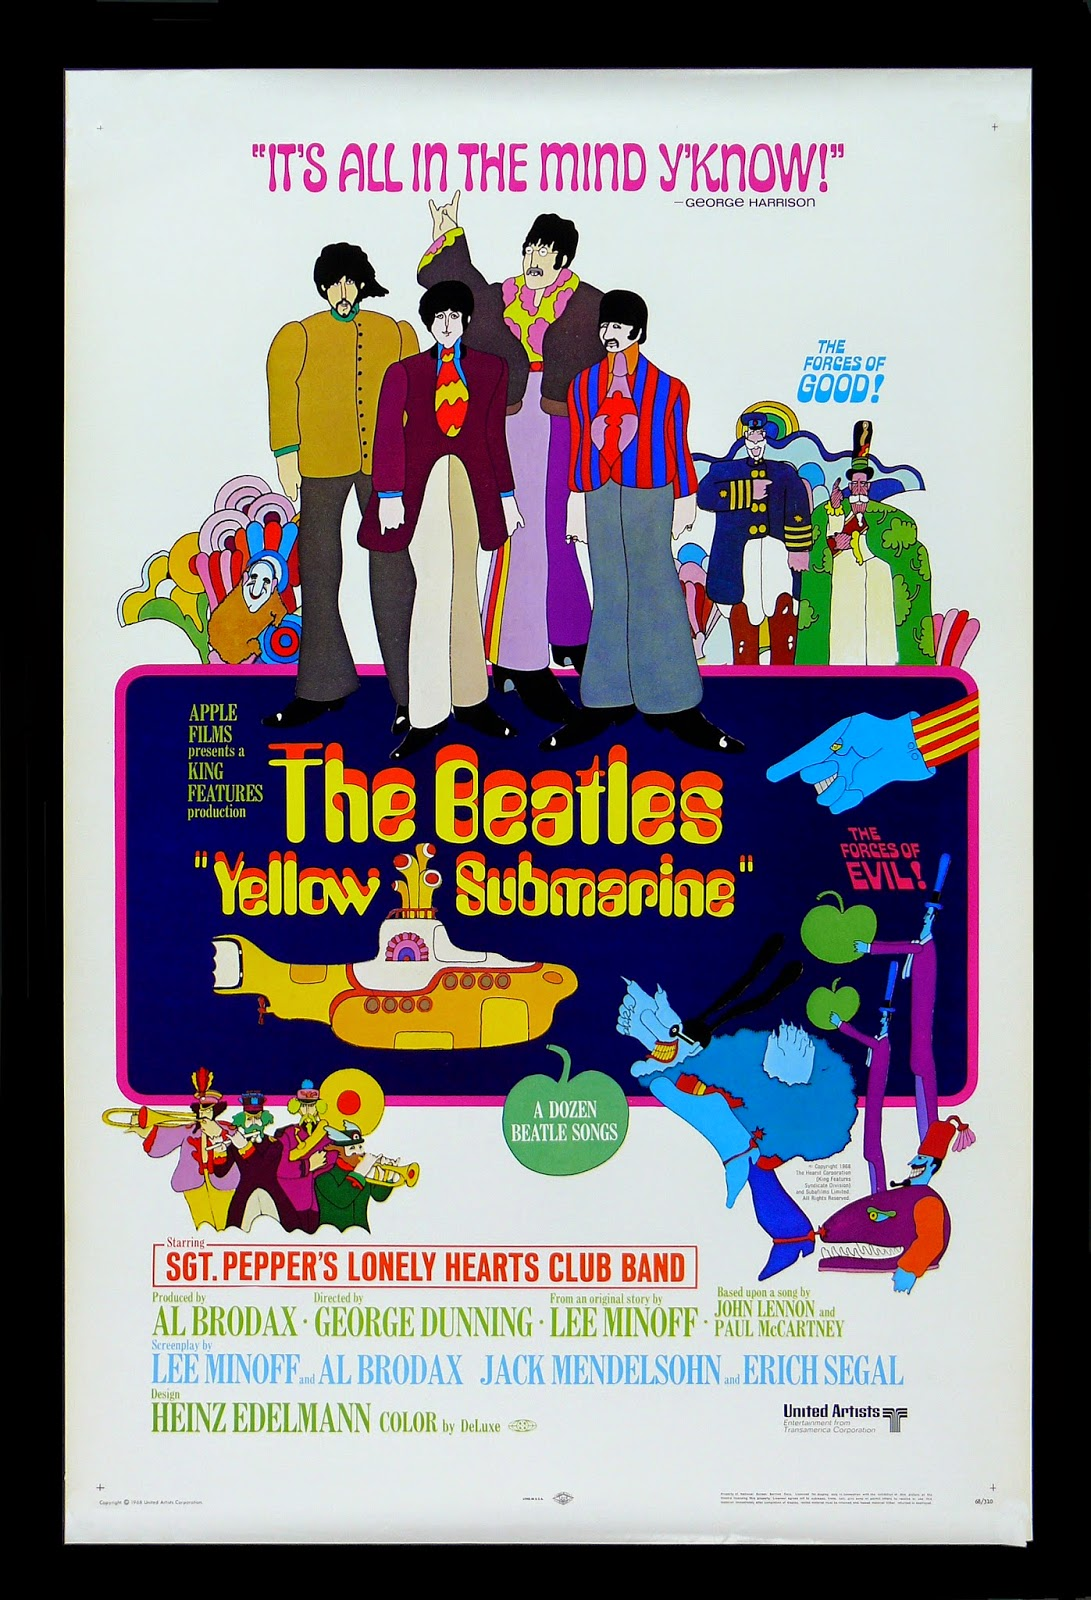 http://danielc61.blogspot.com.ar/2014/07/yellow-submarine-beatles-1968.html